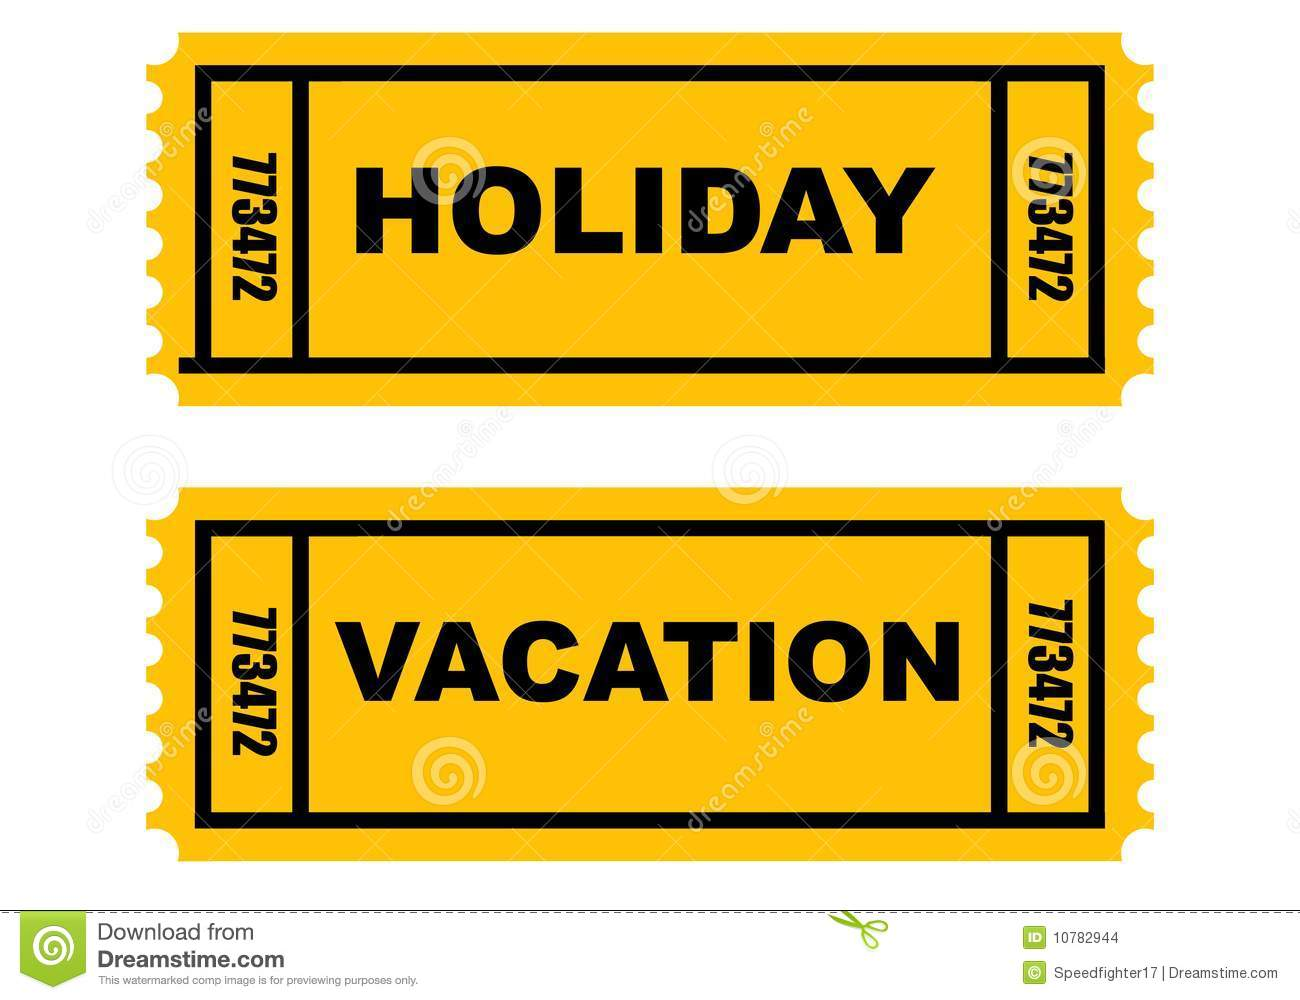 Holiday and vacation tickets isolated on white background.